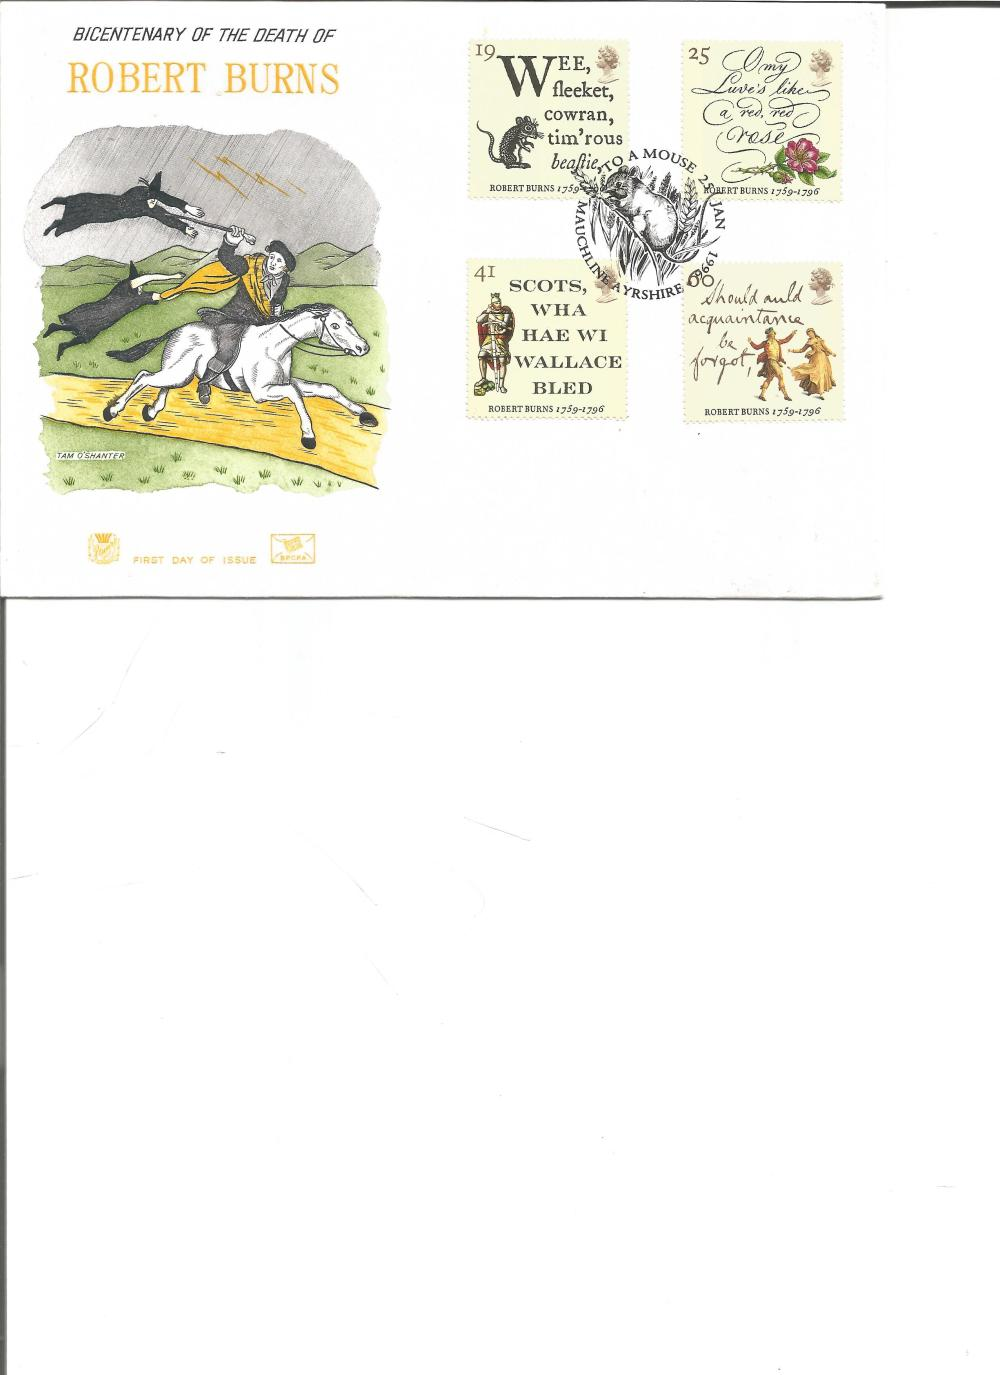 FDC Bicentenary of the Death of Robert Burns set four stamps PM Mauchline Ayrshire 25th Jan 1996. We